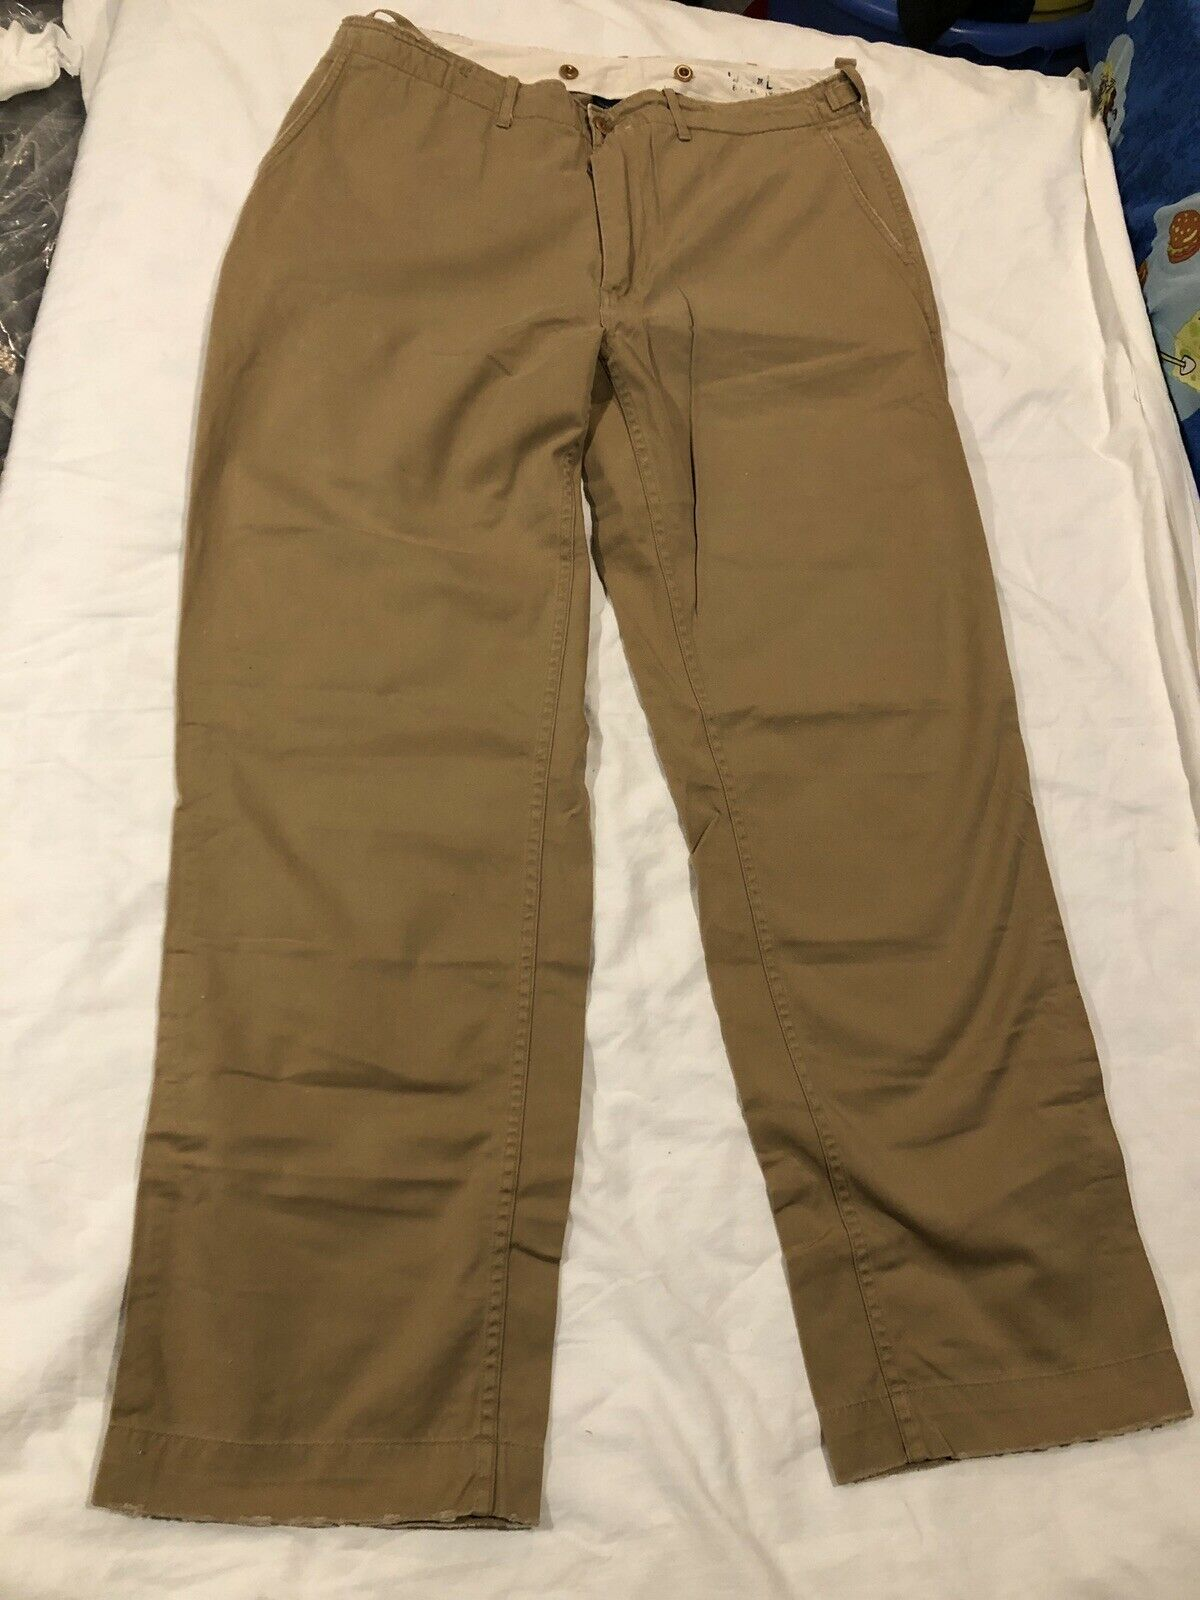 MENS POLO RALPH LAUREN STANDARD ISSUE MILITARY STYLE KHAKI TROUSER PANTS 38x32